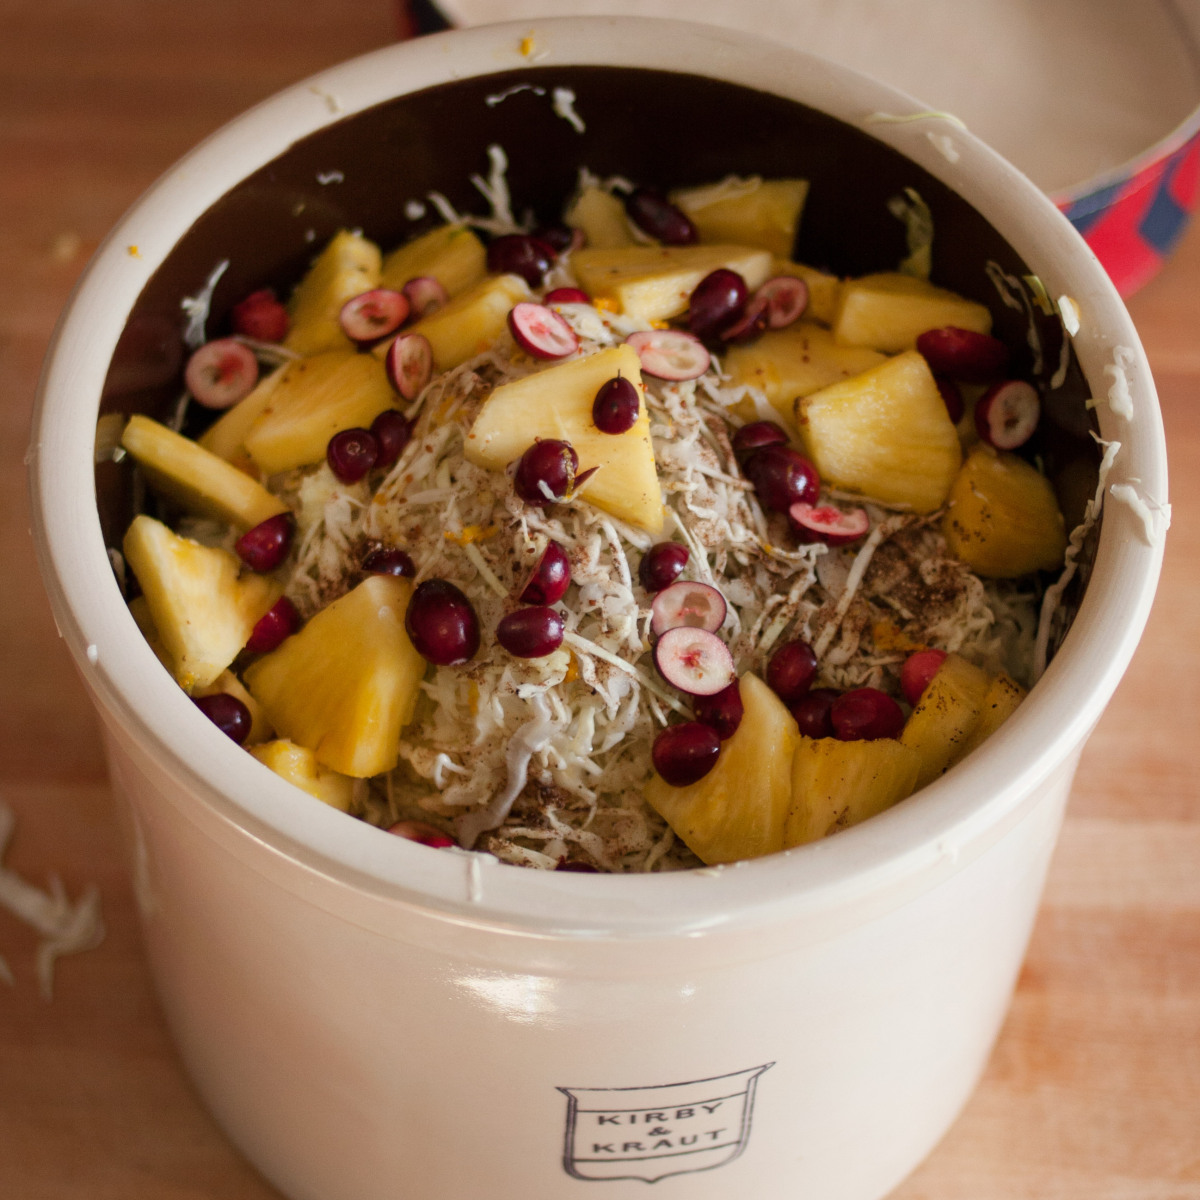 Yule Kraut with pineapples and cranberries